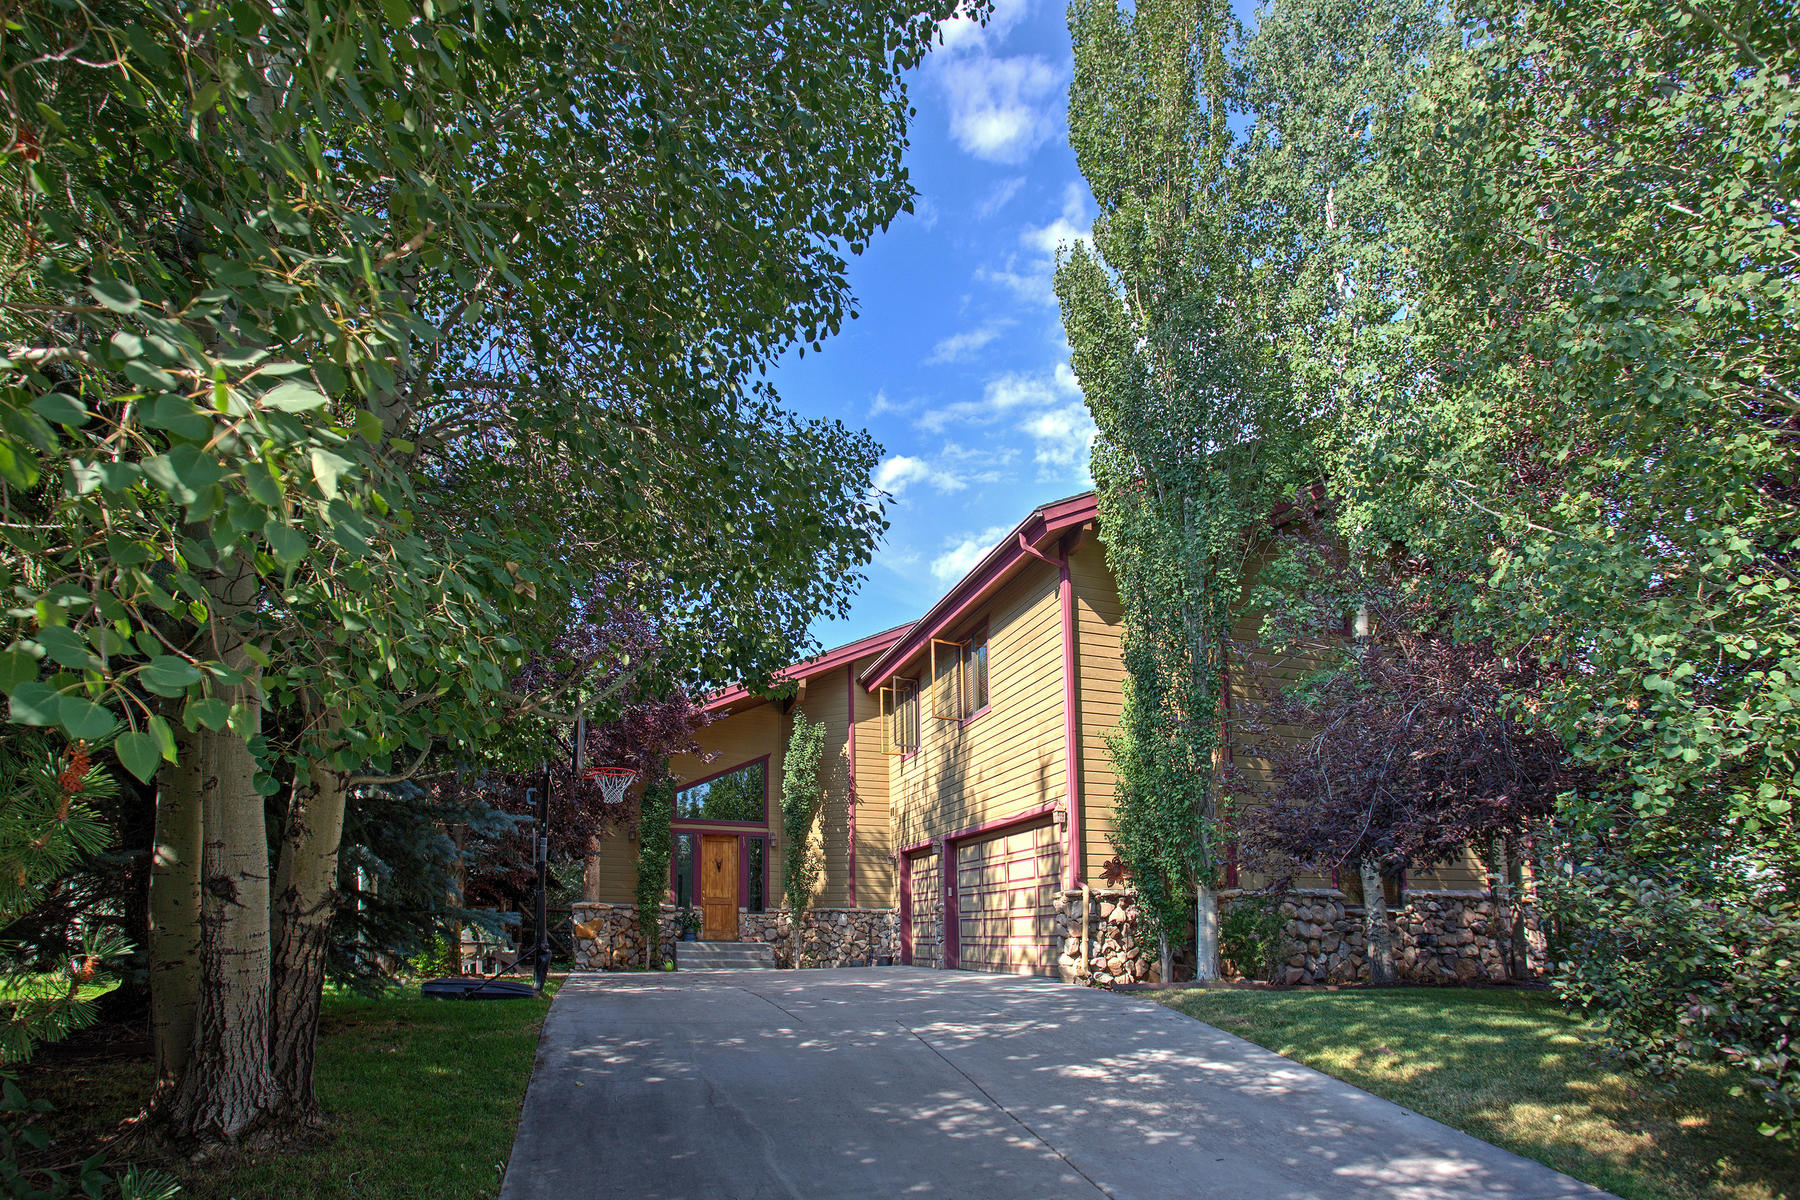 Single Family Home for Sale at Perfect Location 941 Cutter Ln Park City, Utah 84098 United States